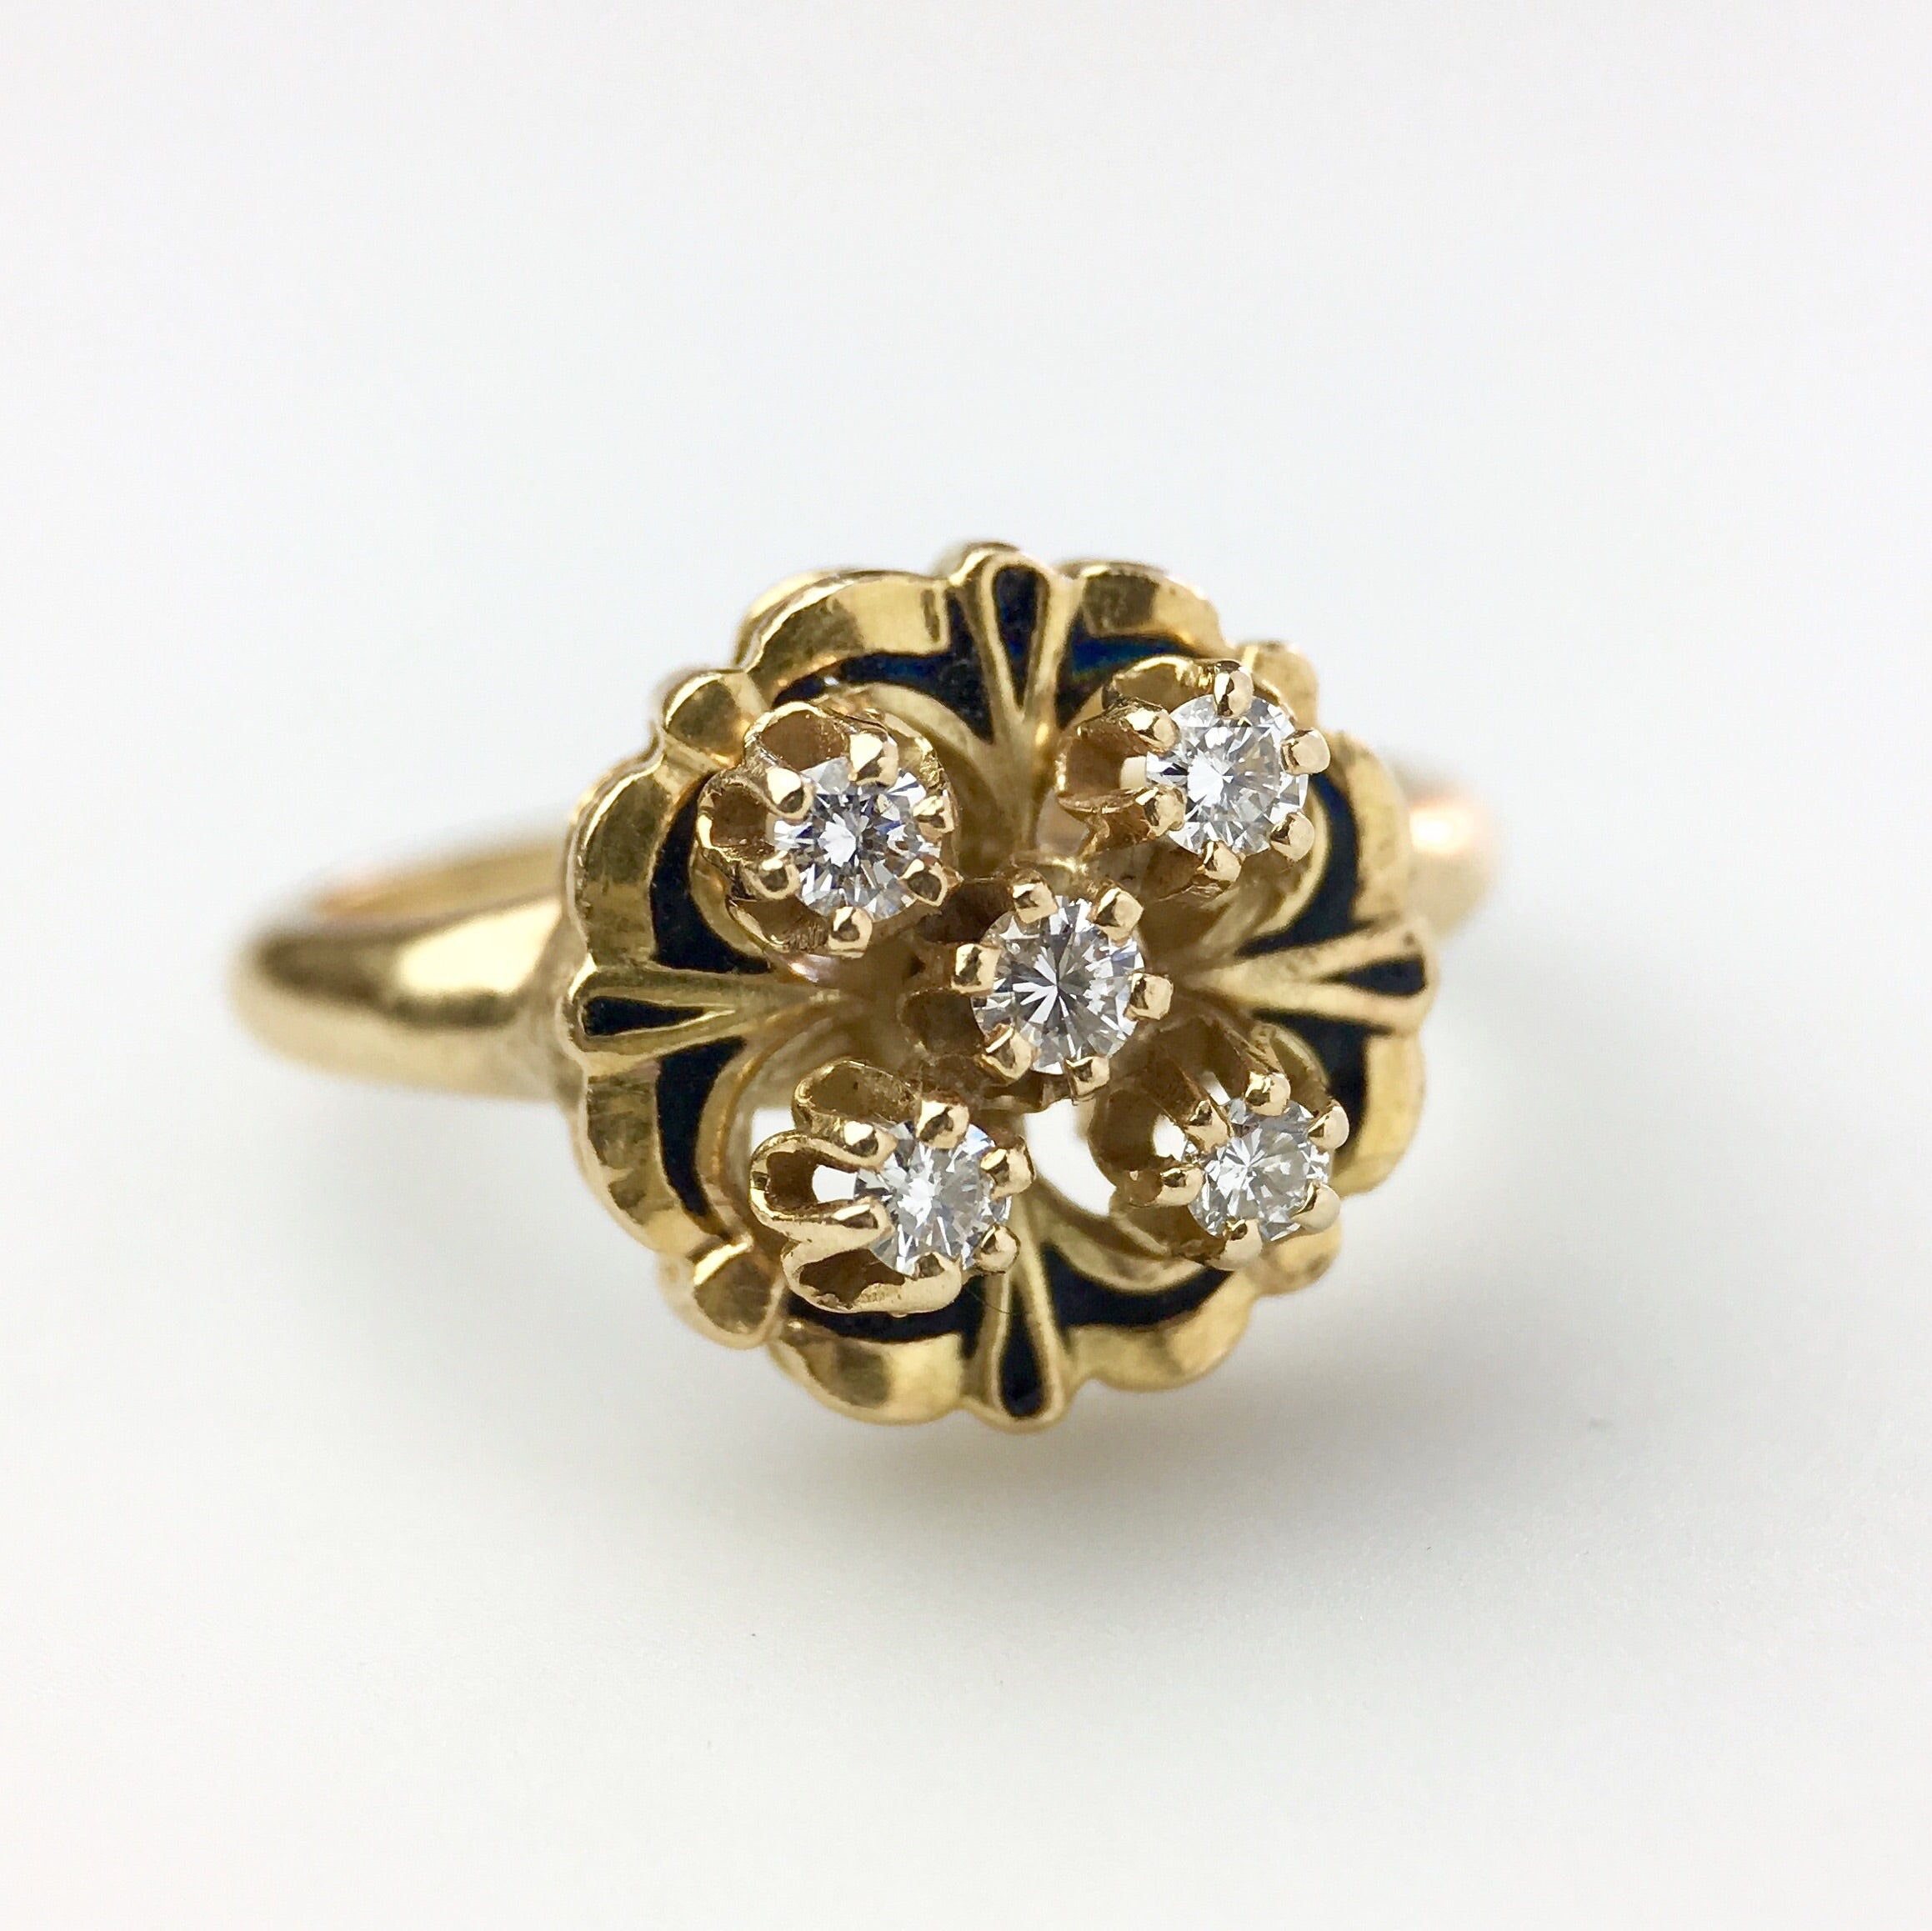 ANTIQUE 14K YELLOW GOLD with DIAMONDS & ENAMEL Ring